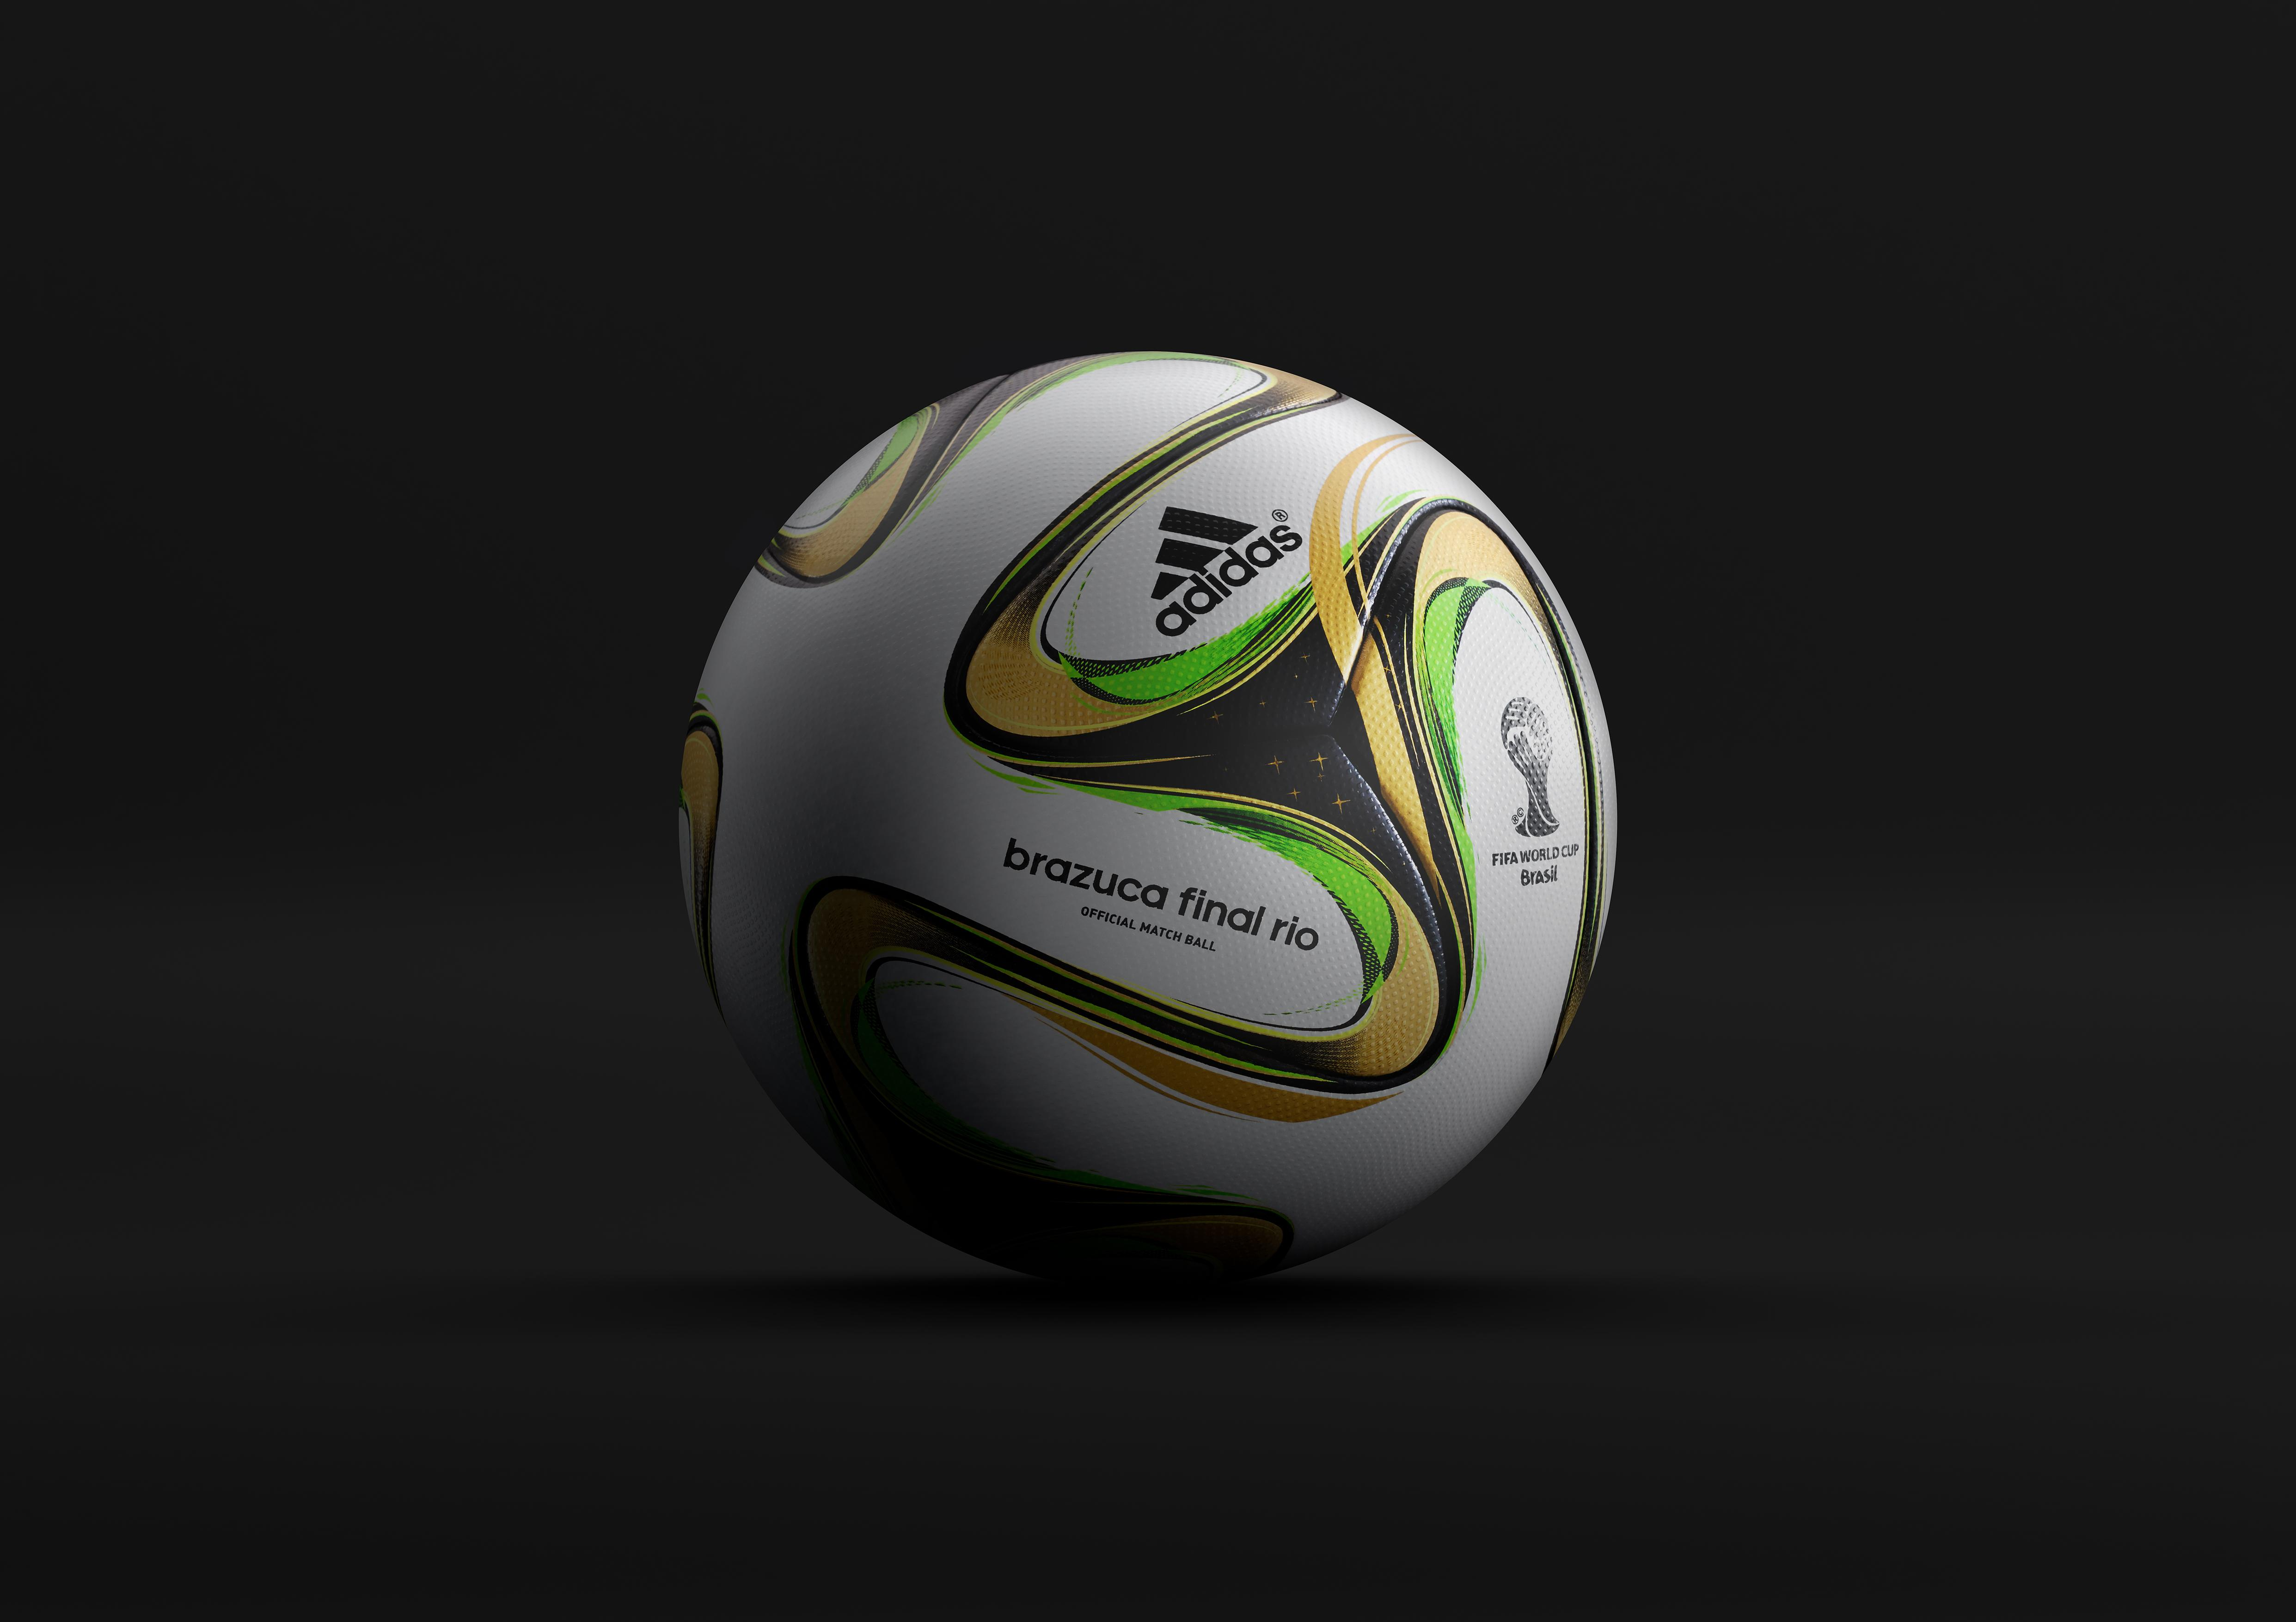 f1a56b547 adidas unveils Brazuca Final Rio: Official match ball for the final of the 2014  FIFA World Cup